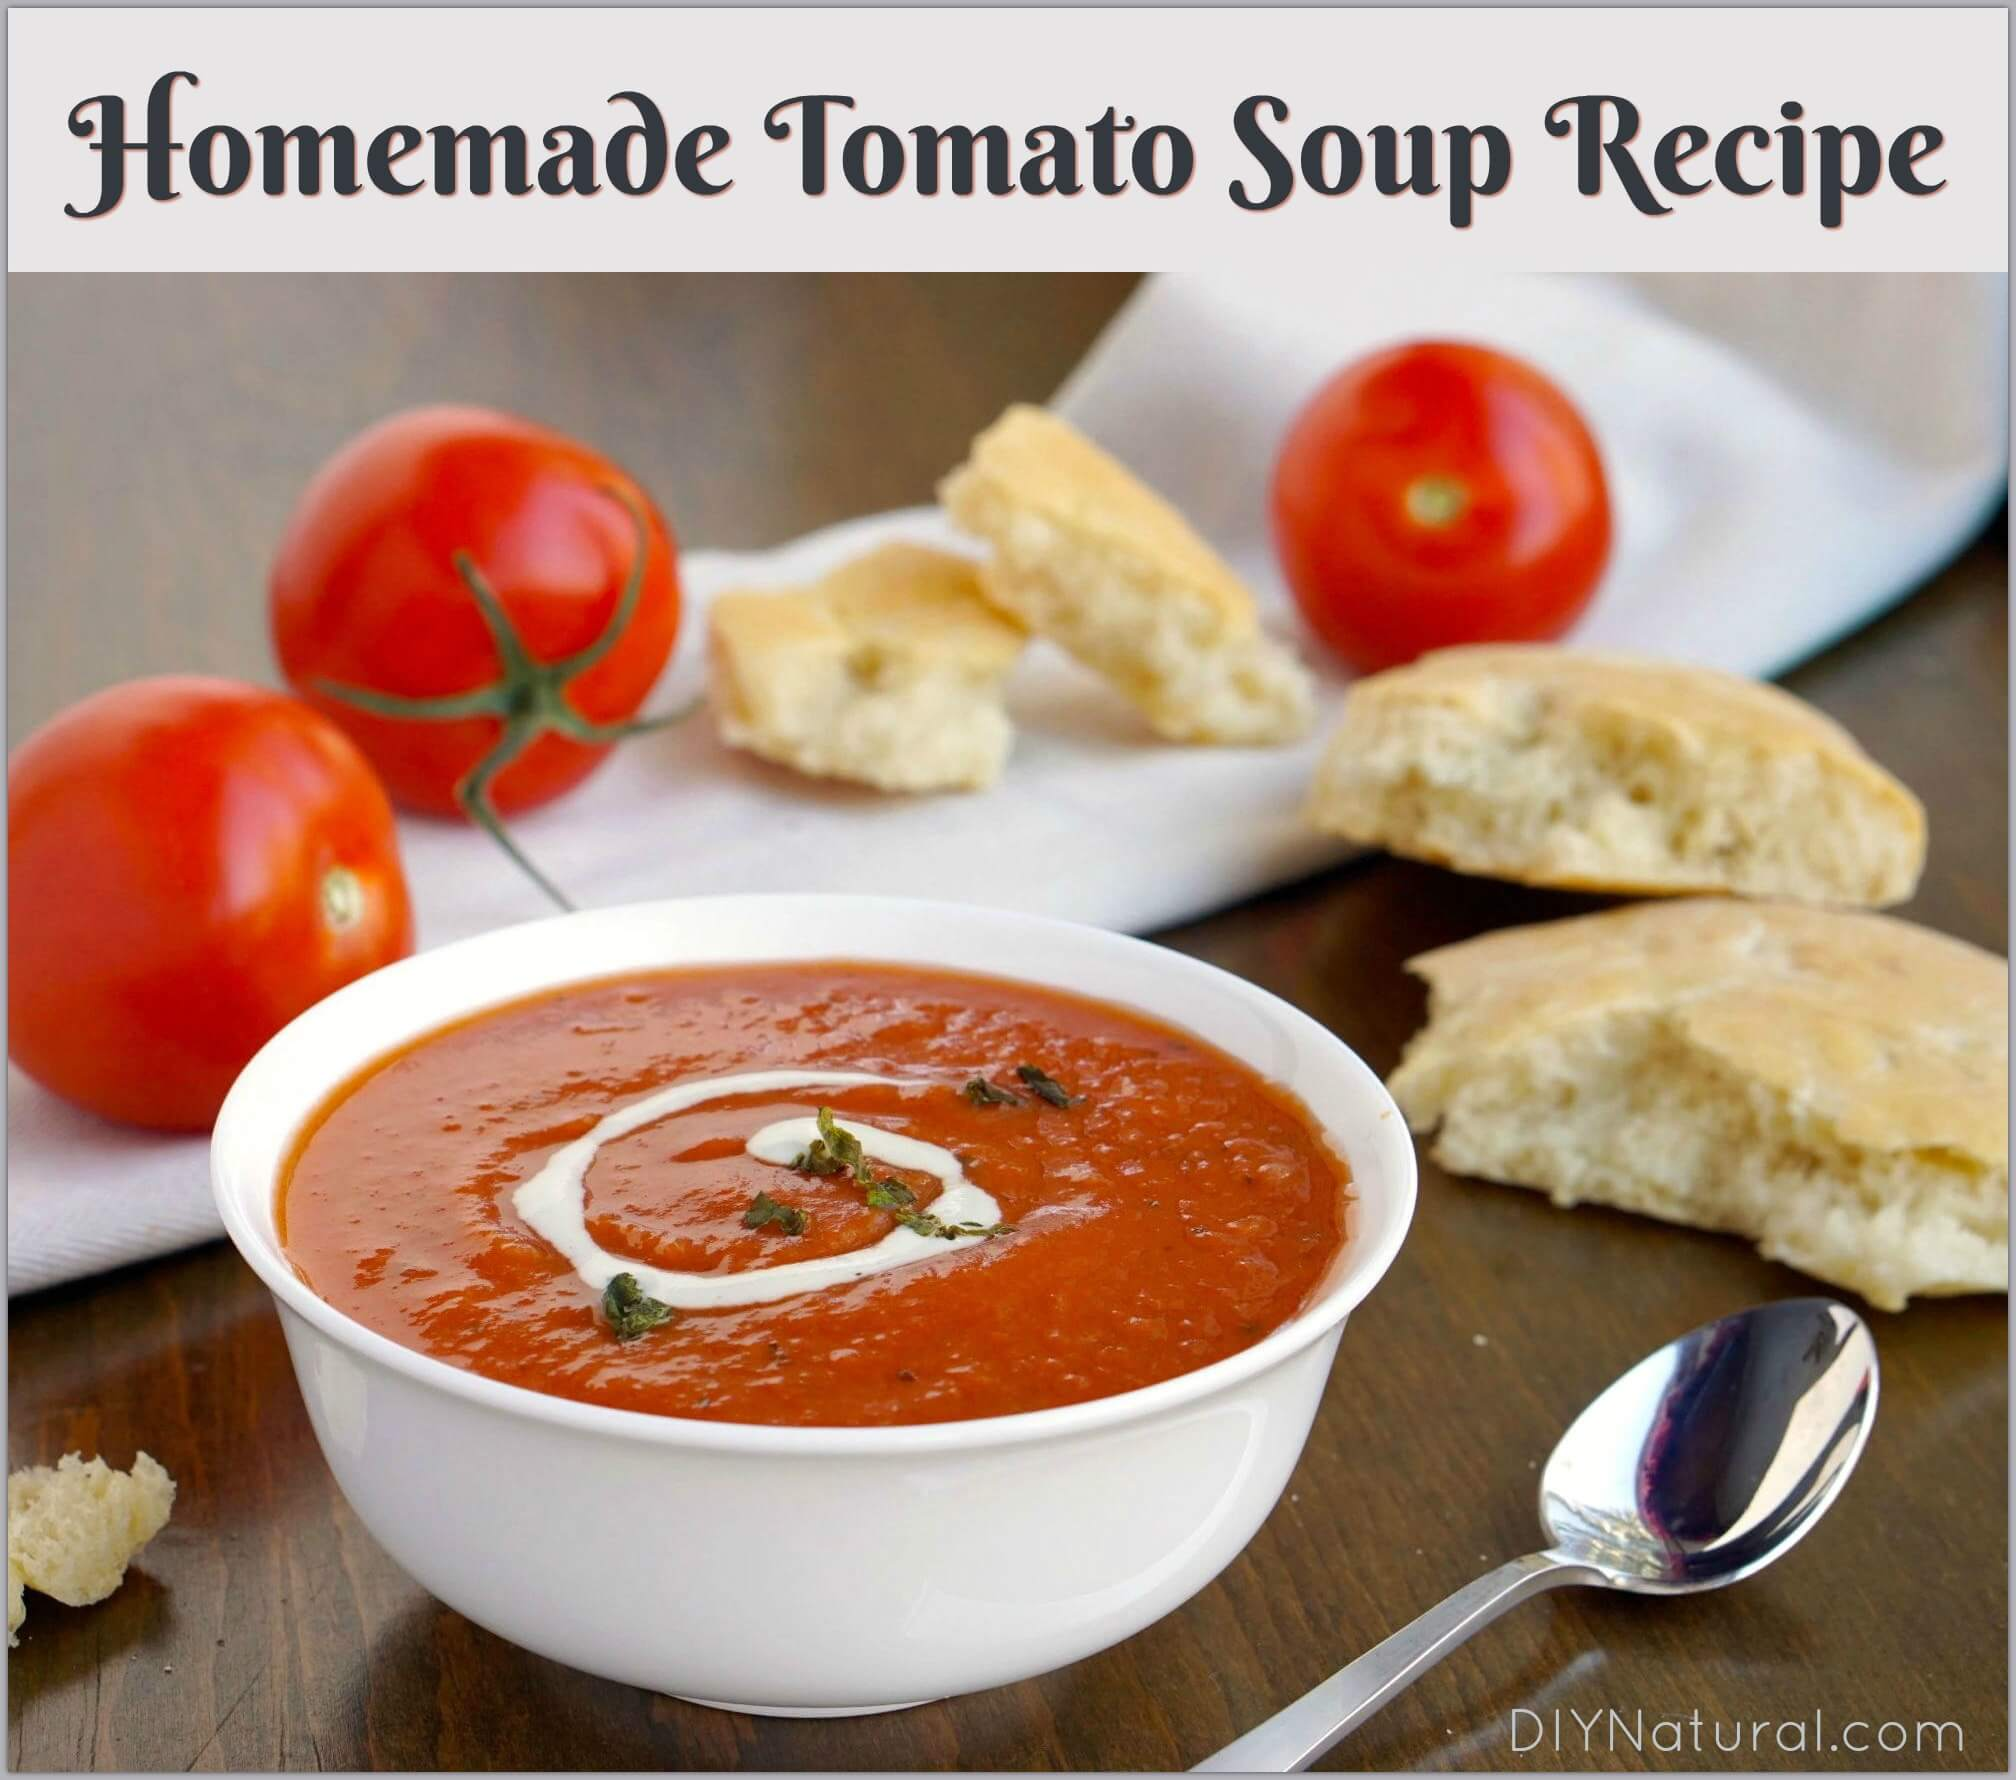 Tomato Soup Recipe Delicious Homemade Tomato Soup Everyone Loves